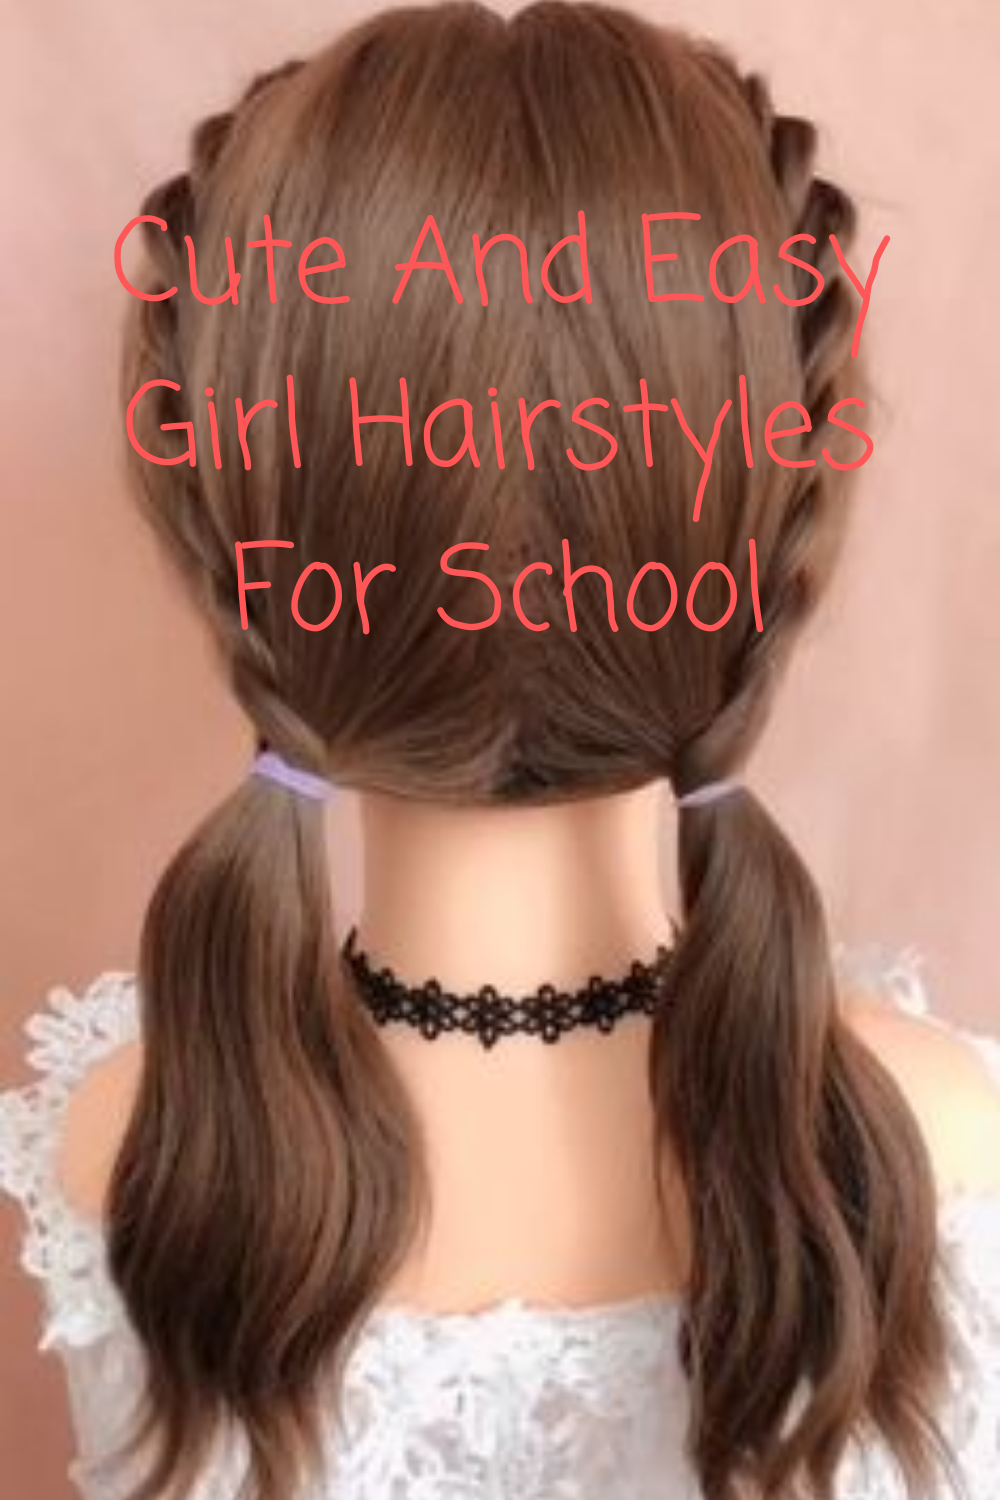 Cute And Easy Girl Hairstyles For School Girls Hairstyles Easy Kids Hairstyles Girls Old Hairstyles